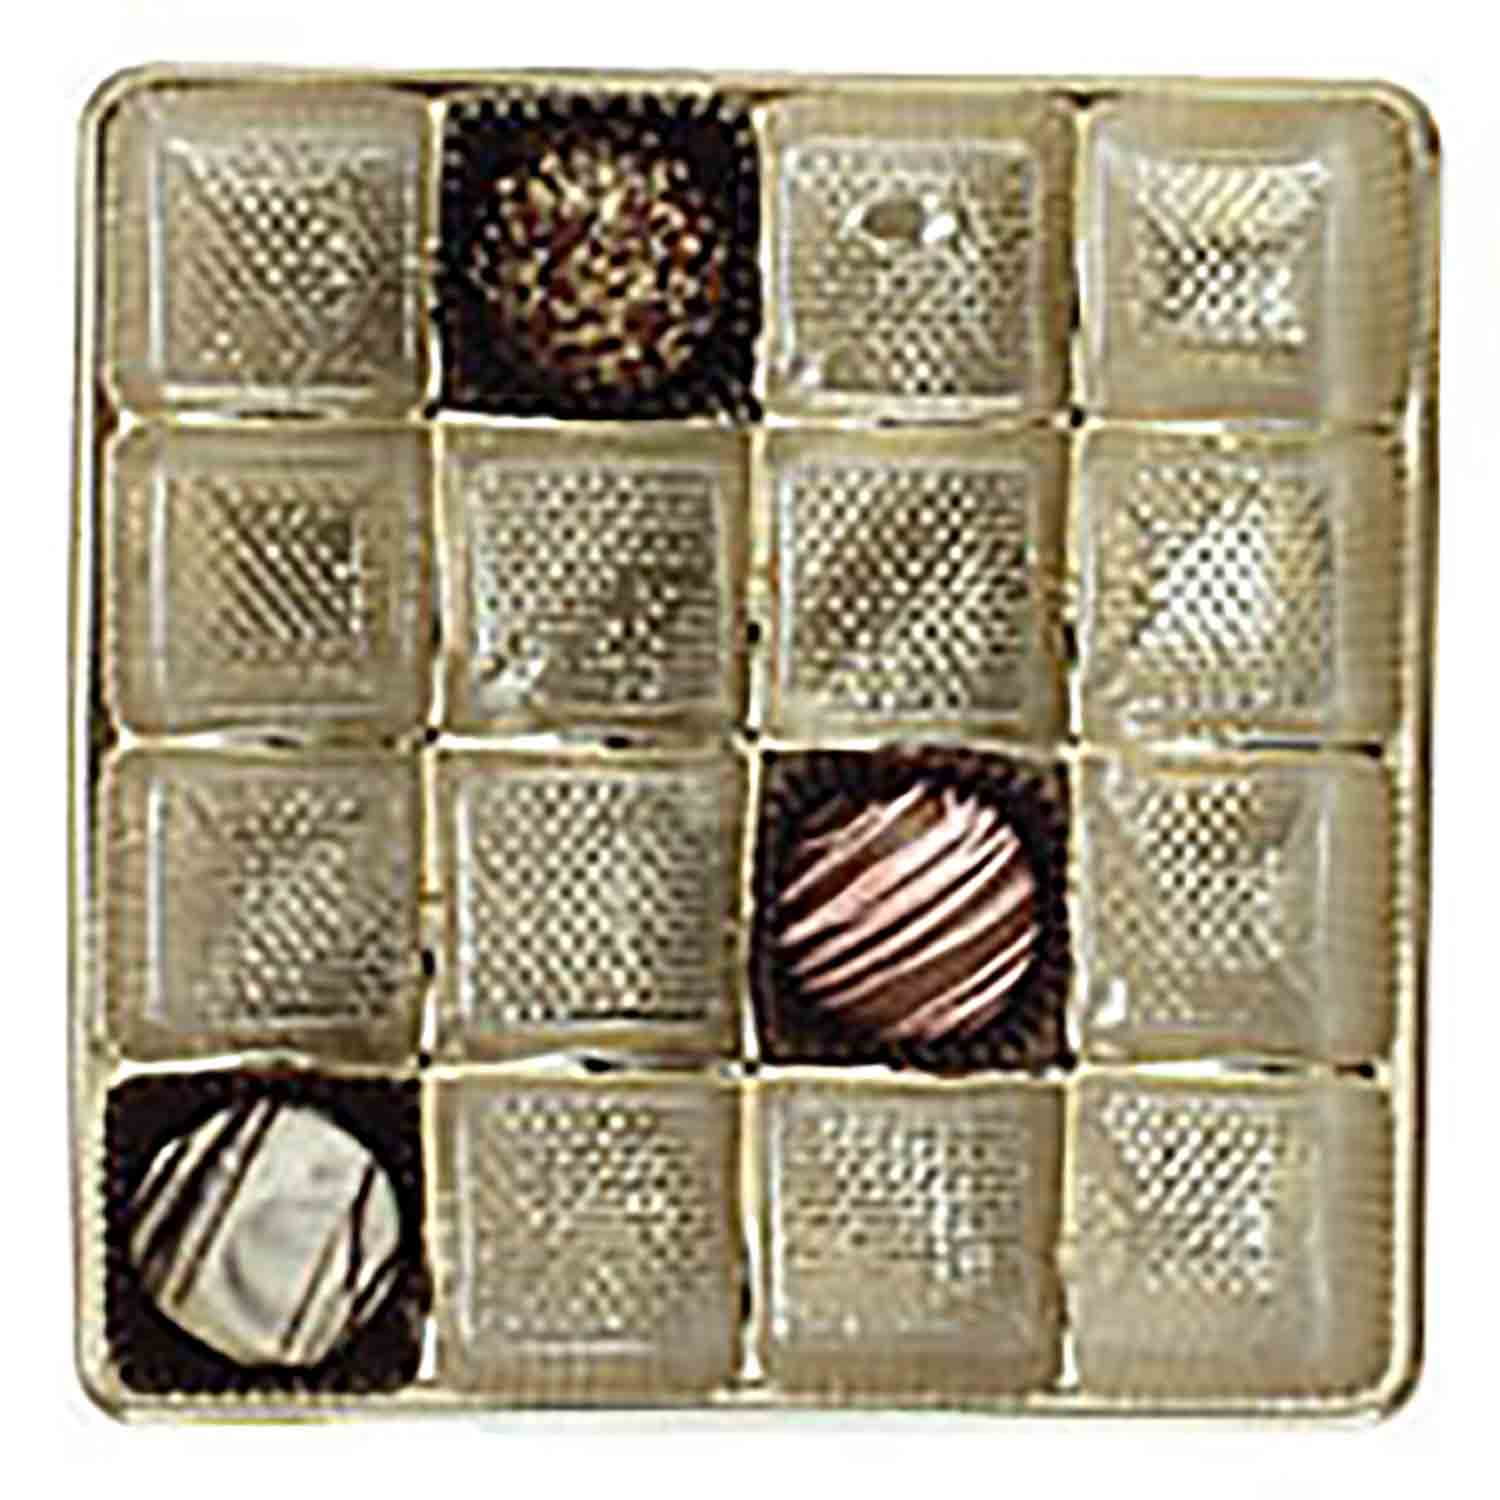 1/2 lb. Box Square Gold Insert, #4 cup,16 cavities